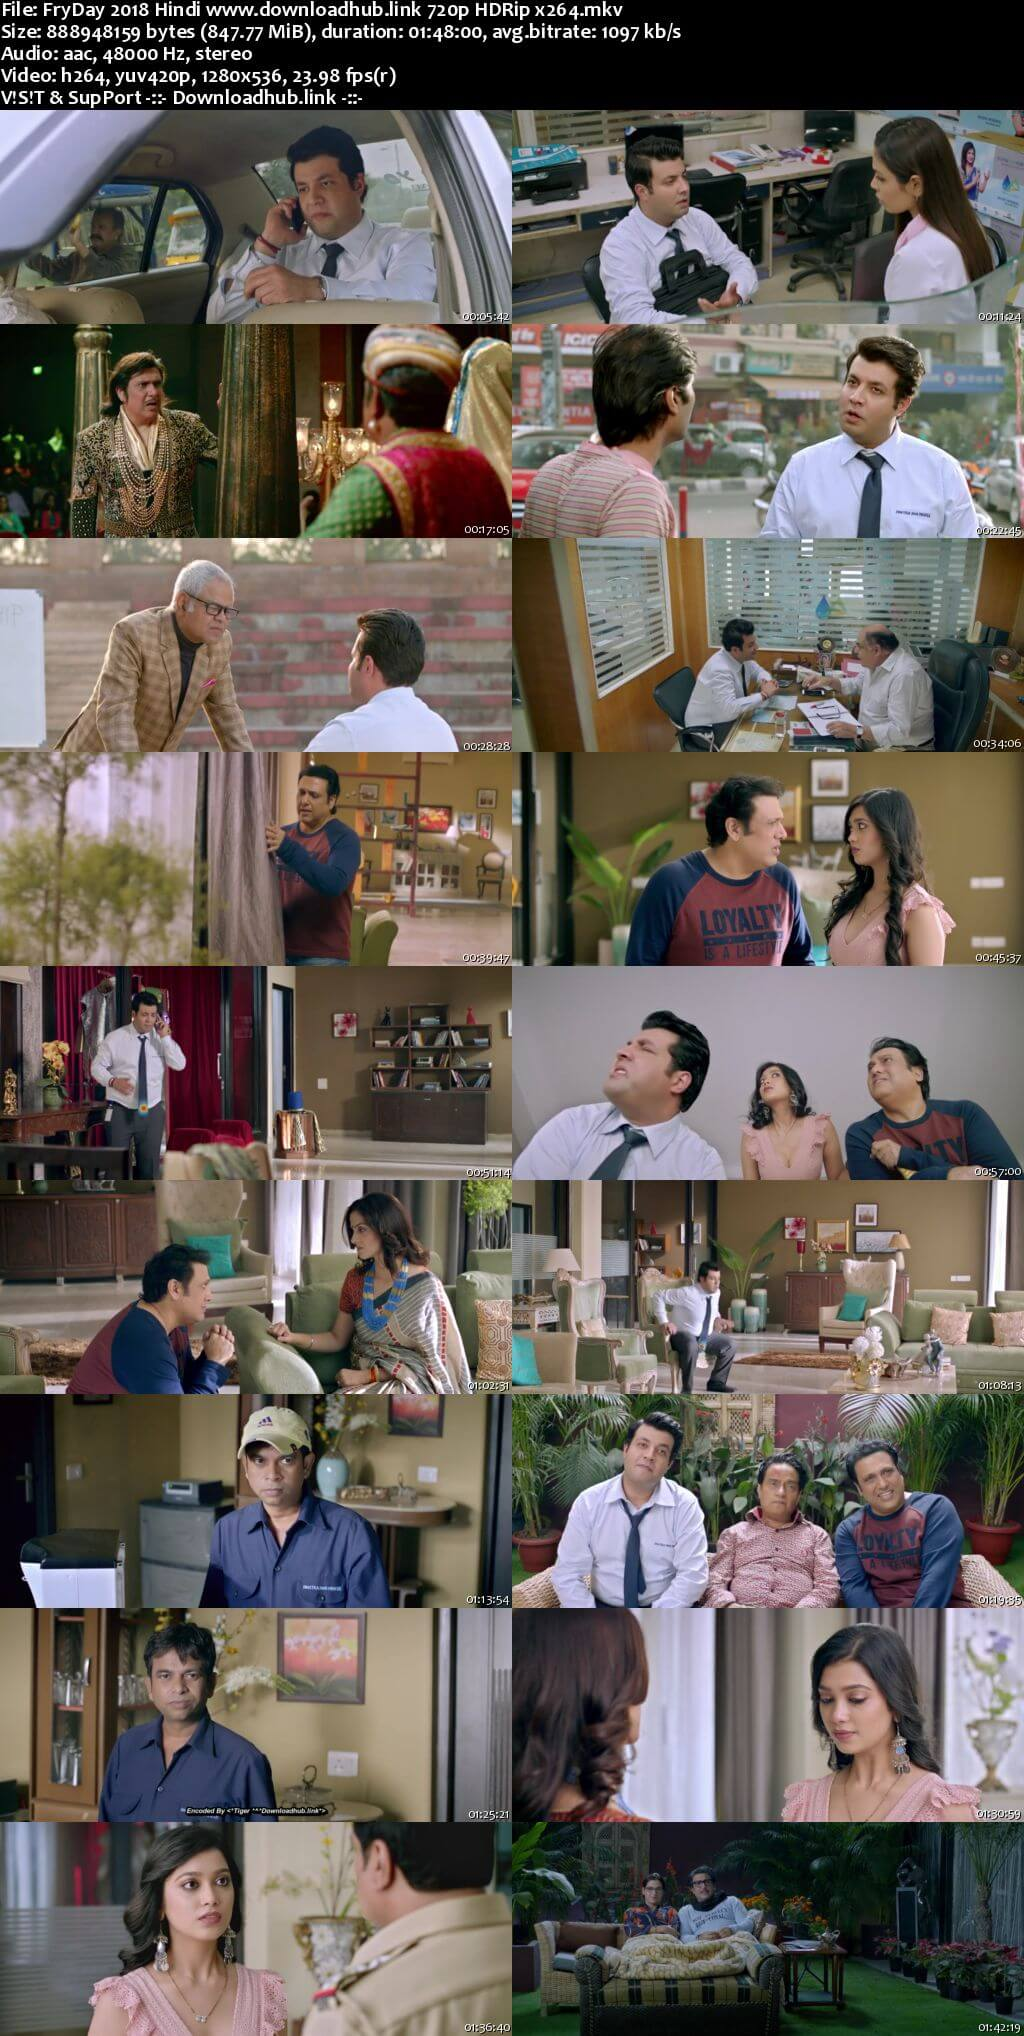 FryDay 2018 Hindi 720p HDRip x264